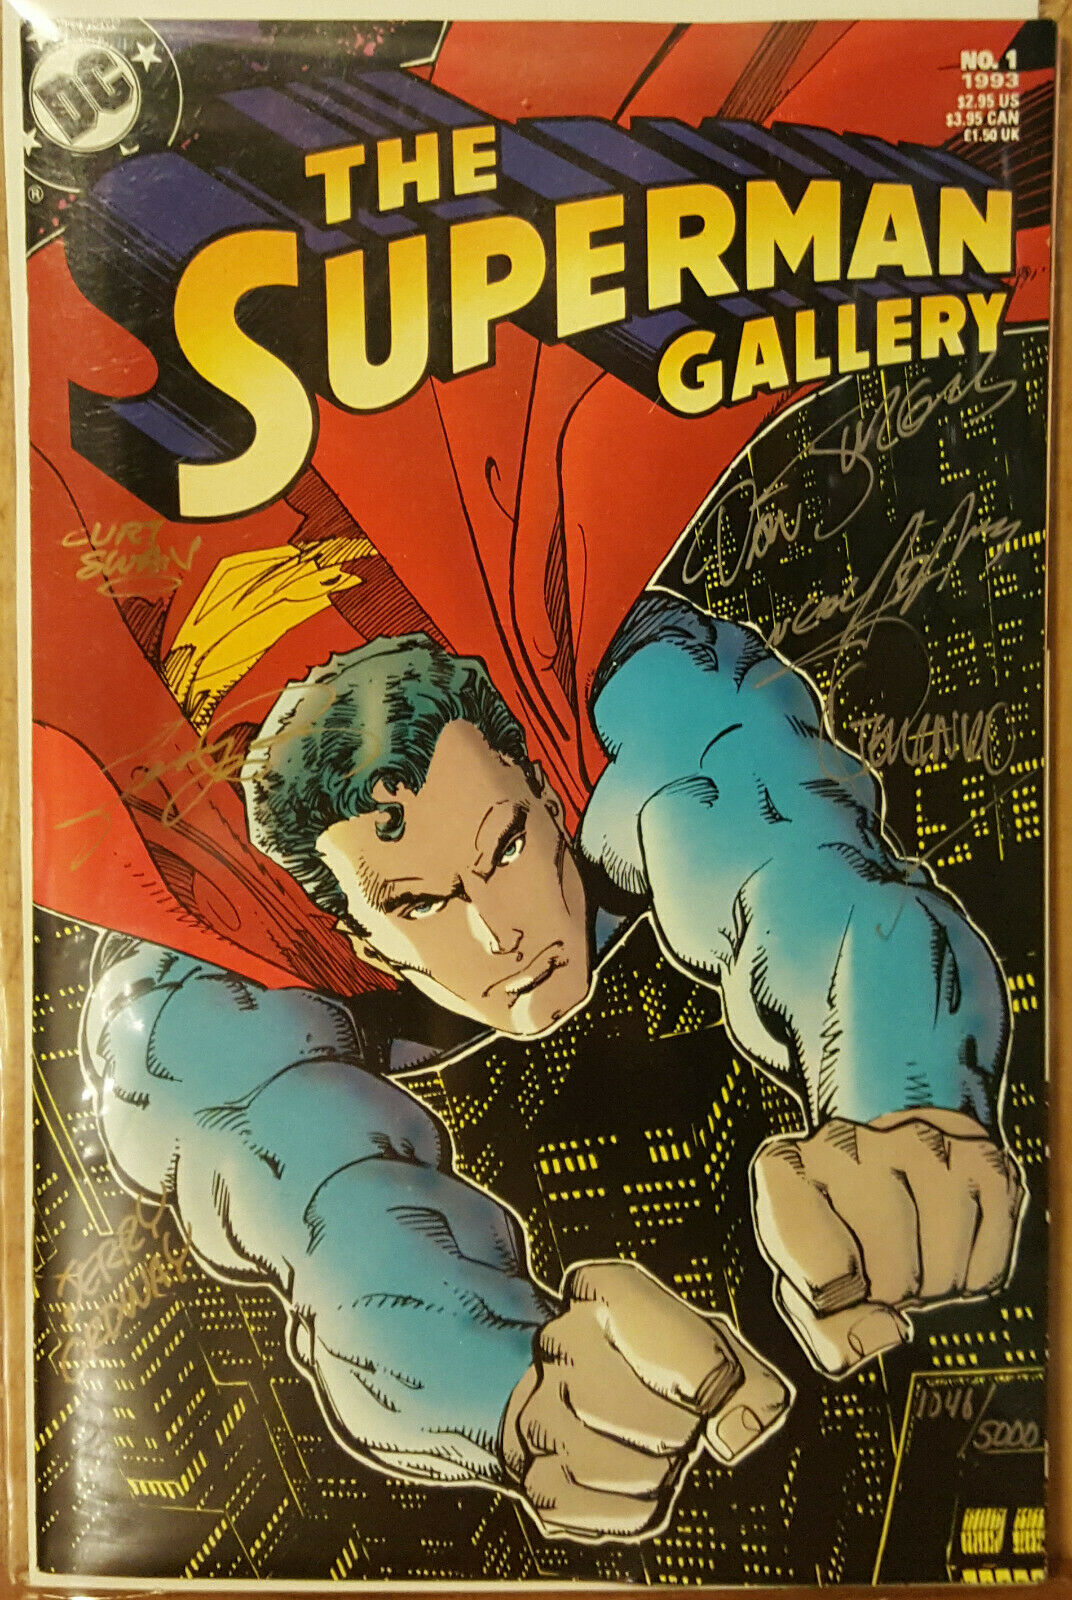 THE SUPERMAN GALLERY #1 COA # 1046 SIGNED BY NEAL ADAMS GEORGE PEREZ CURT SWAN